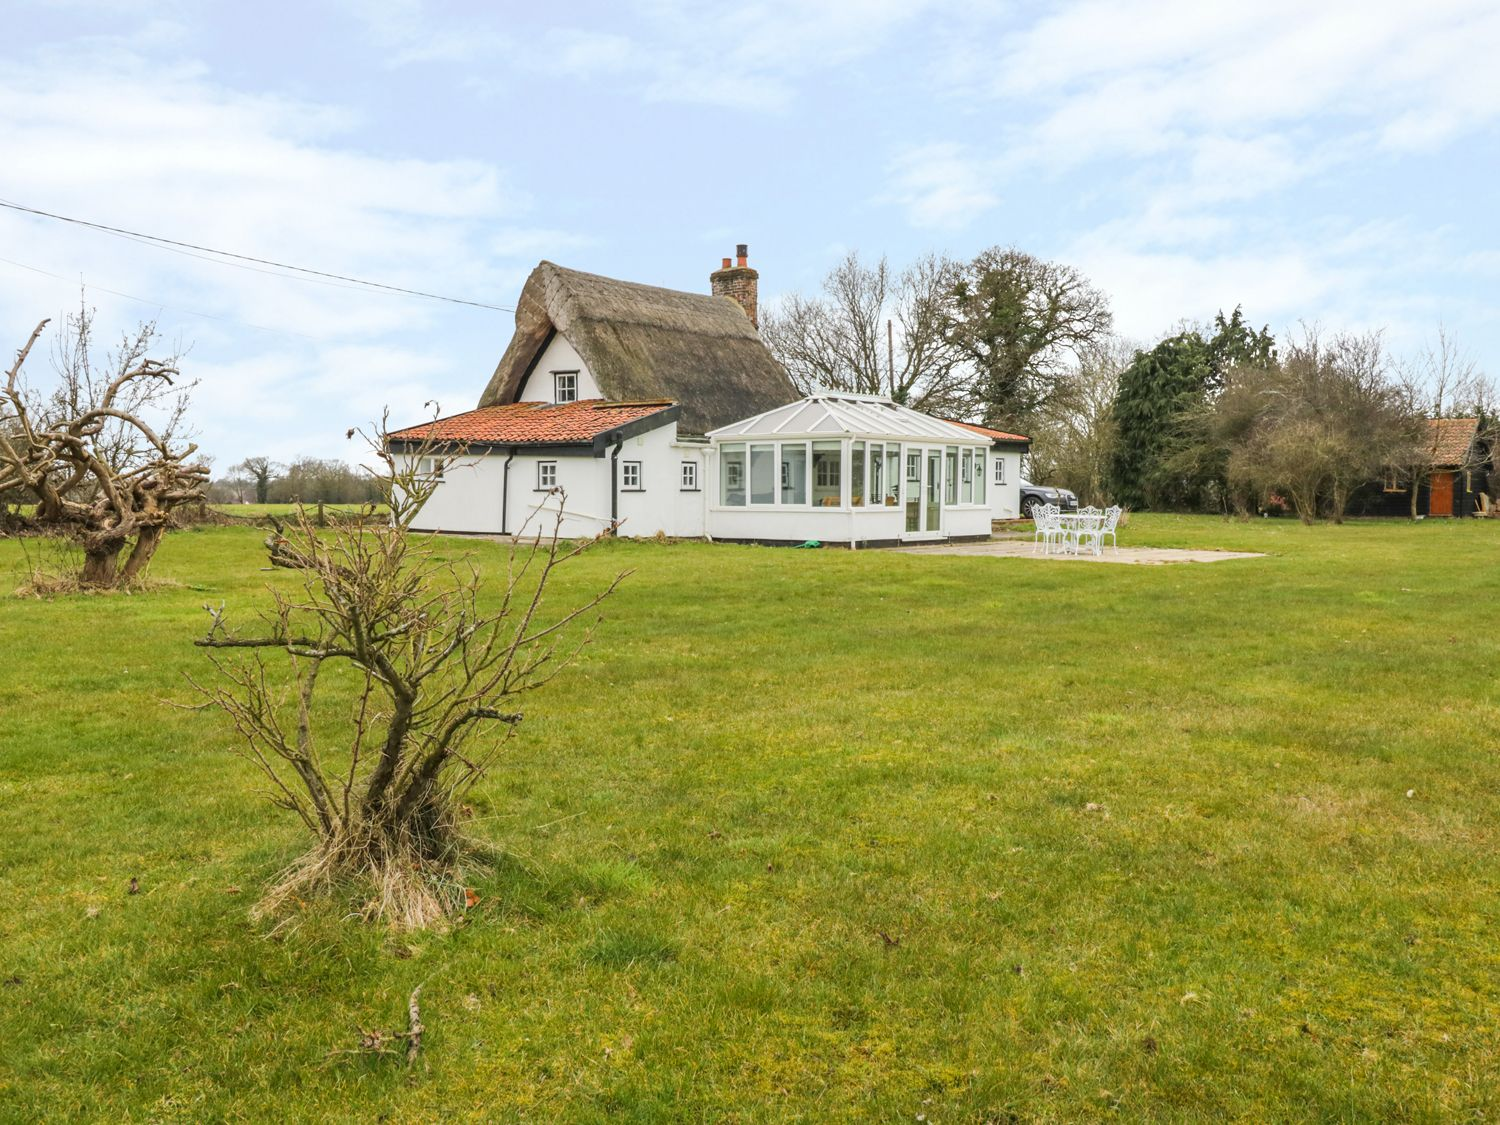 Holiday Cottages in Suffolk: Clay Street, Thornham Magna, Eye | sykescottages.co.uk